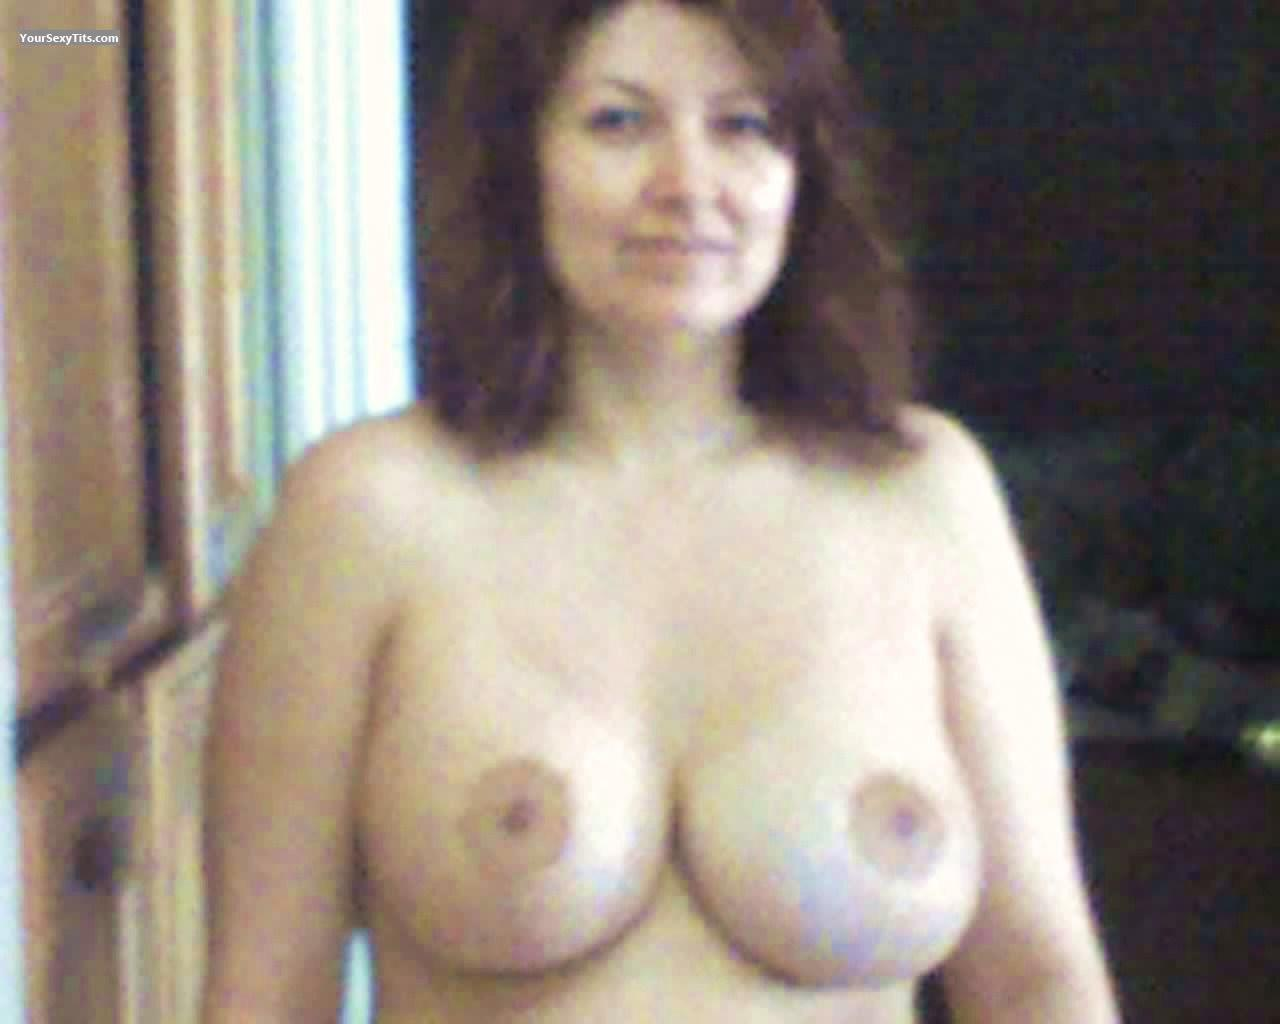 Tit Flash: Big Tits - Topless Cher from United States